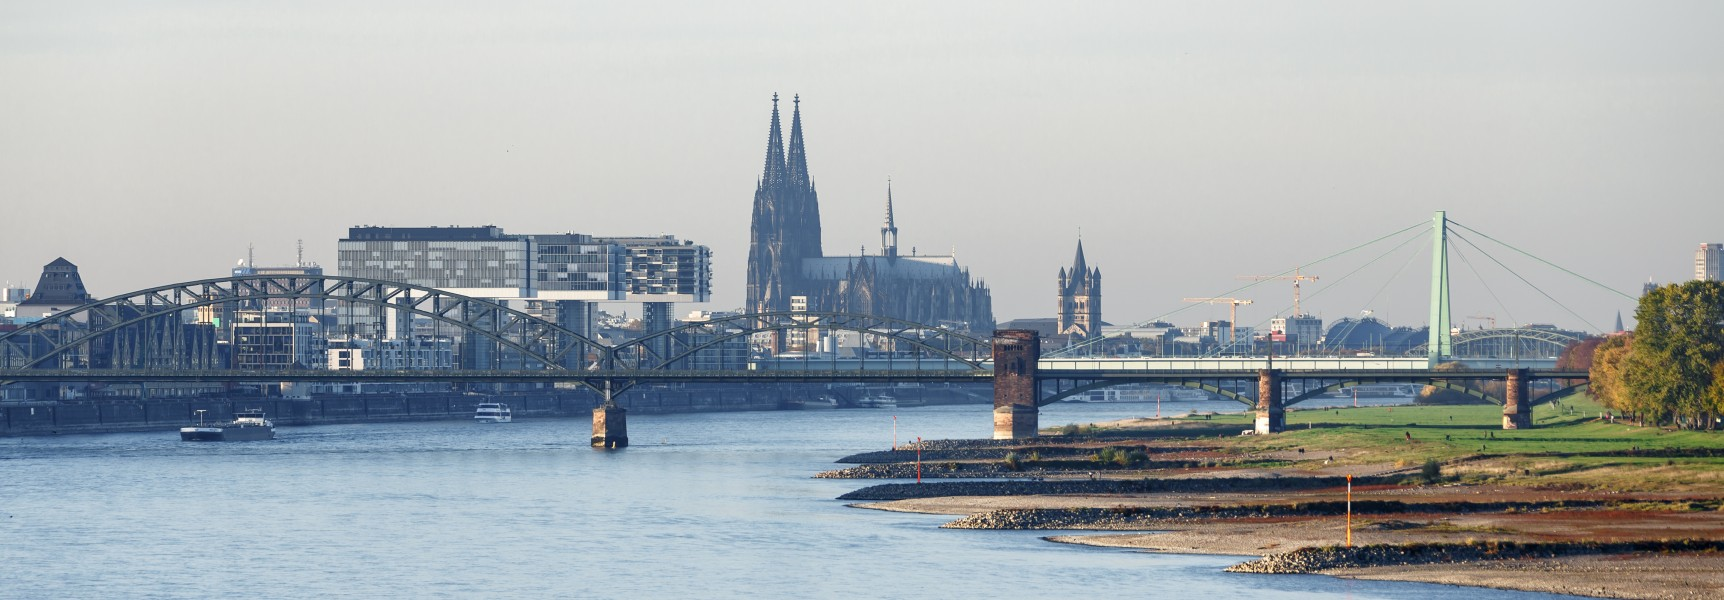 Cologne Germany Cityscape-from-Rodenkirchener-Brücke-01